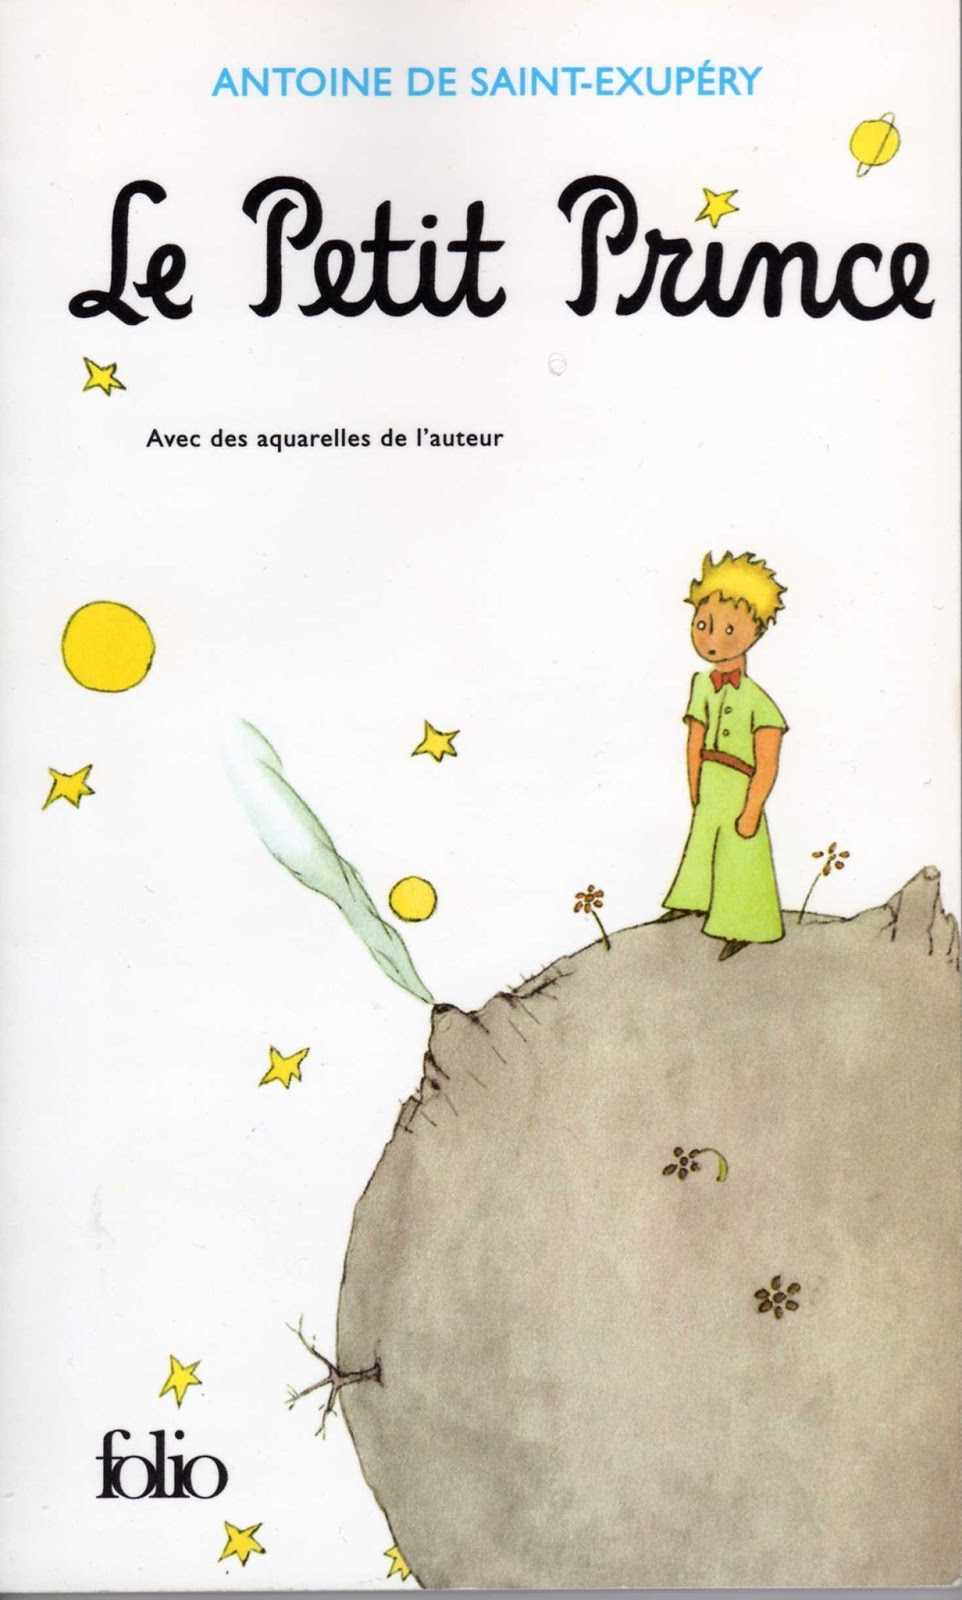 a book analysis of the little prince by antoine de saint exupry Title: the little prince author/s: antoine de saint-exupery publication date: june 29, 2000 publisher: harcourt, inc format: e-book number of pages: 98 moral allegory and spiritual.